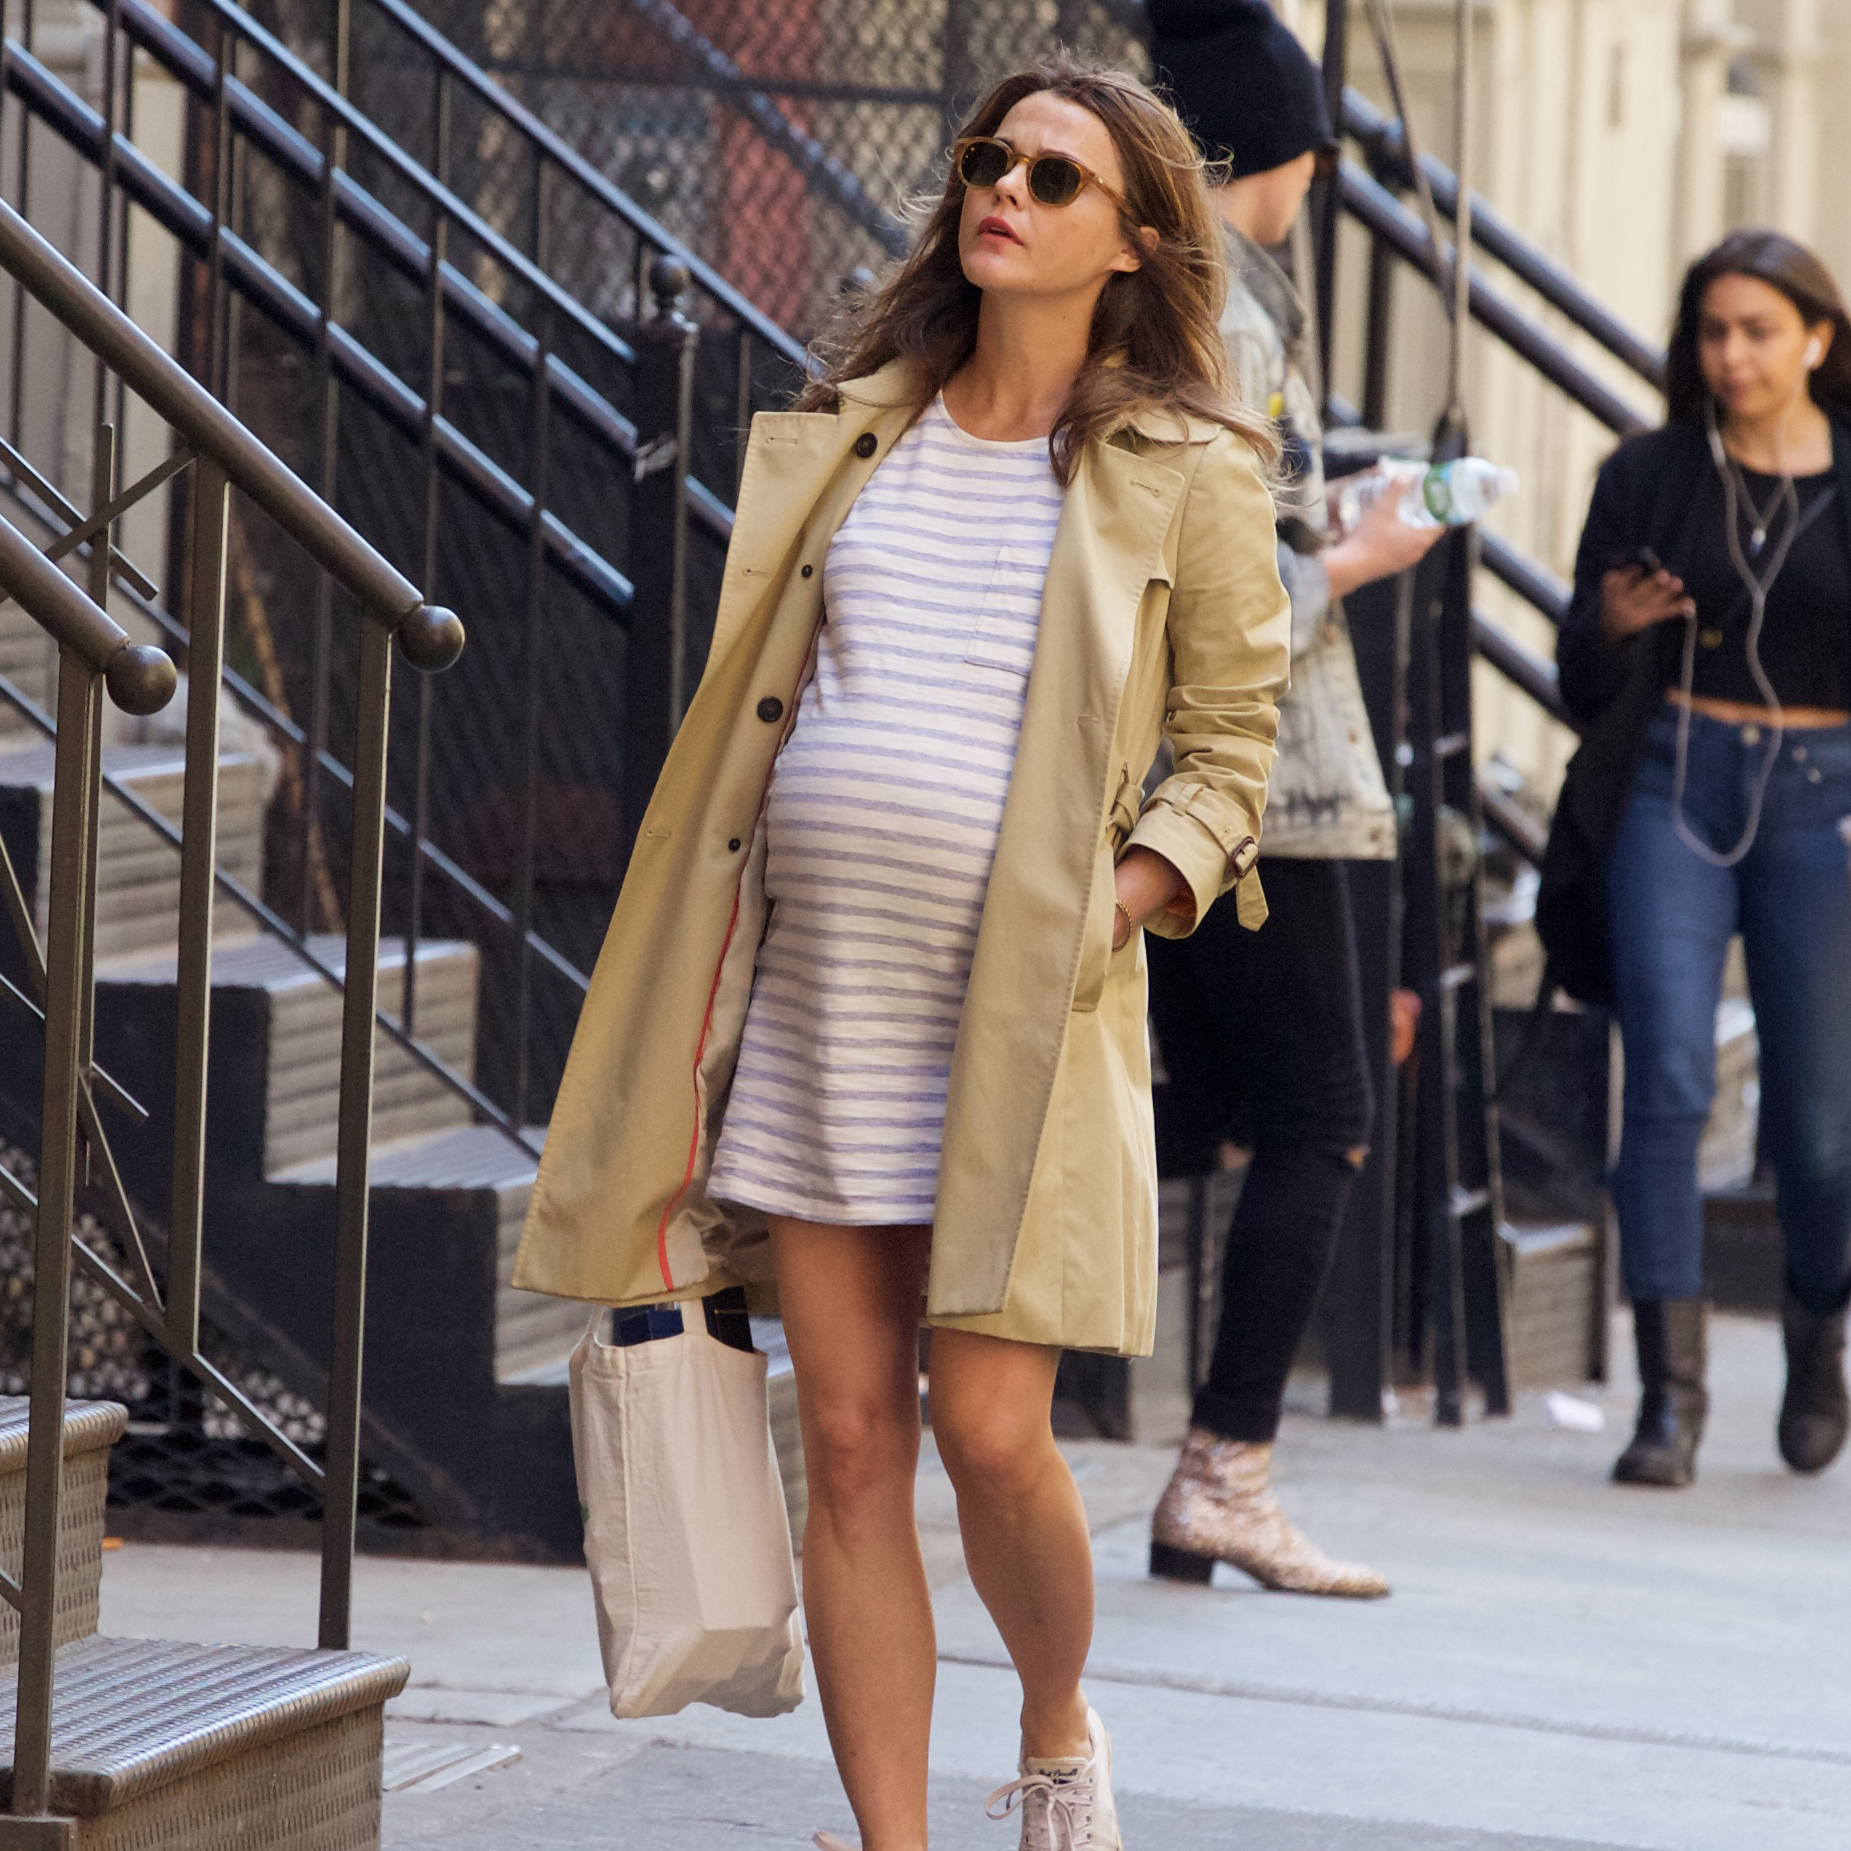 49a9f966fc4a1 Looking Good!Pregnant Keri Russell Shows Off Her Baby Bump in NYC — See the  Pics!